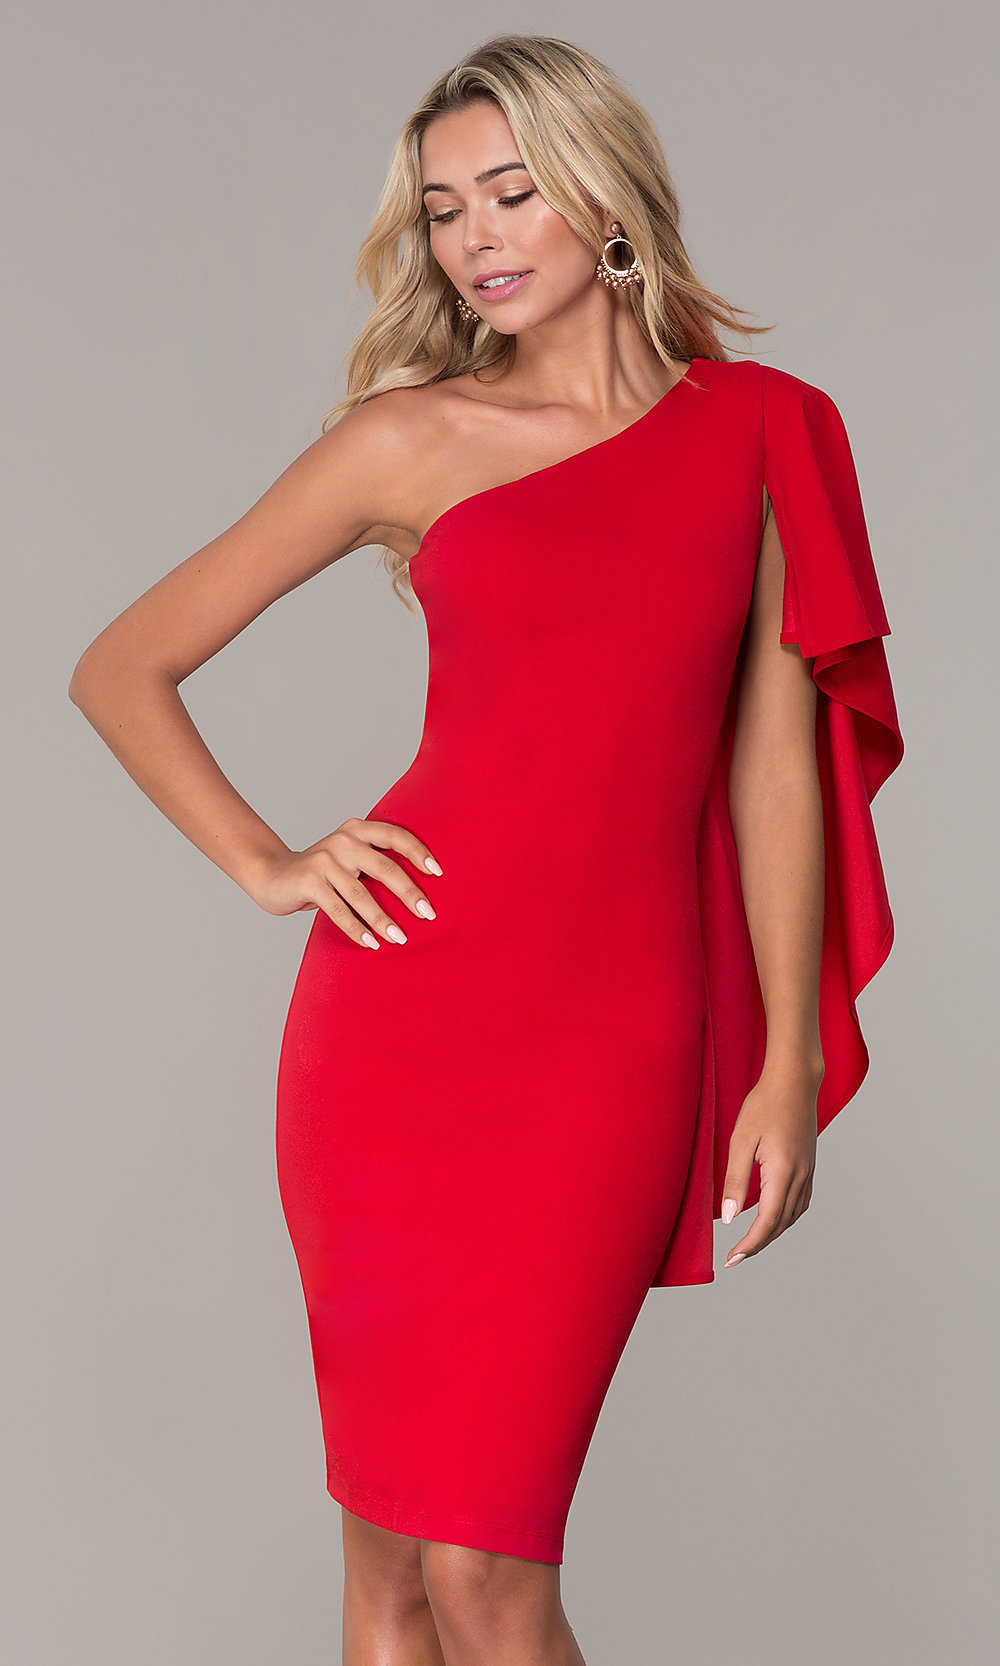 ce388c60ad4 Short One-Shoulder Red Cocktail Dress - PromGirl